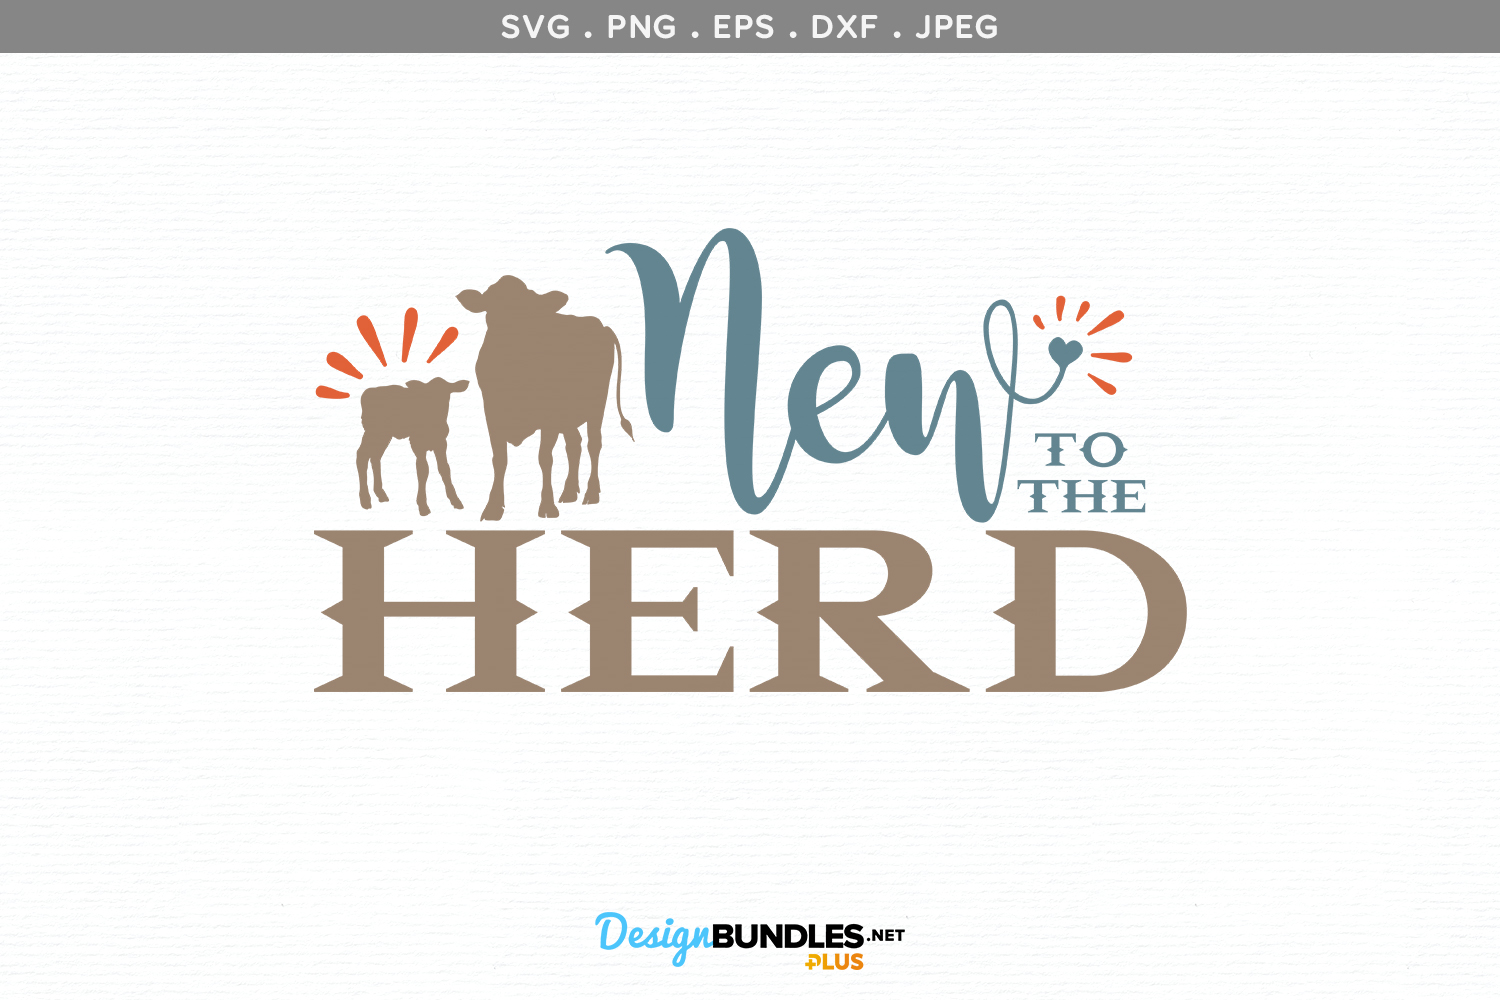 New to the Herd - svg & printable example image 2